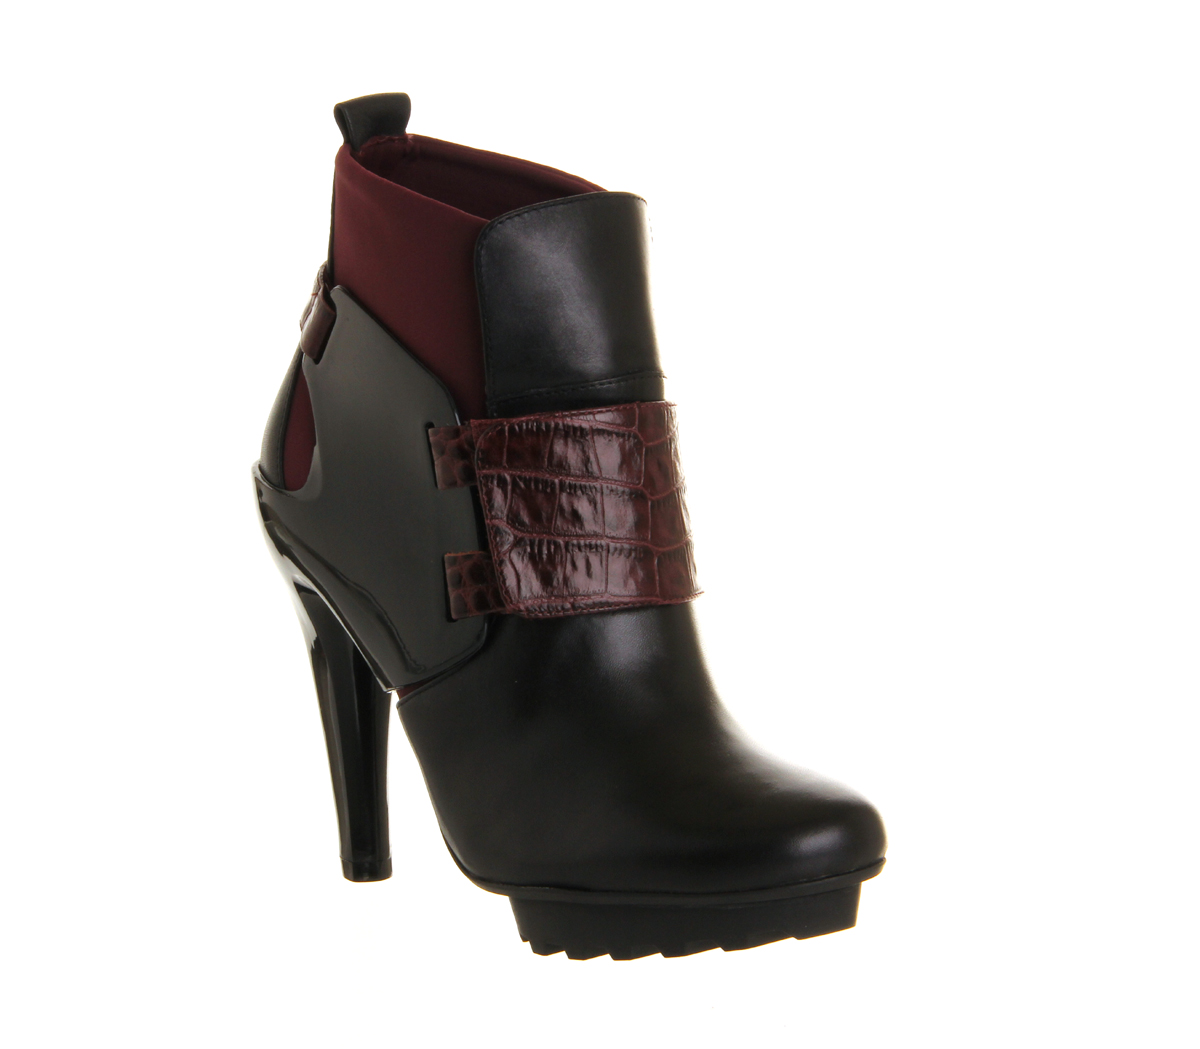 womens united nude winter eros high heel ankle boot black bordeaux boots ebay. Black Bedroom Furniture Sets. Home Design Ideas